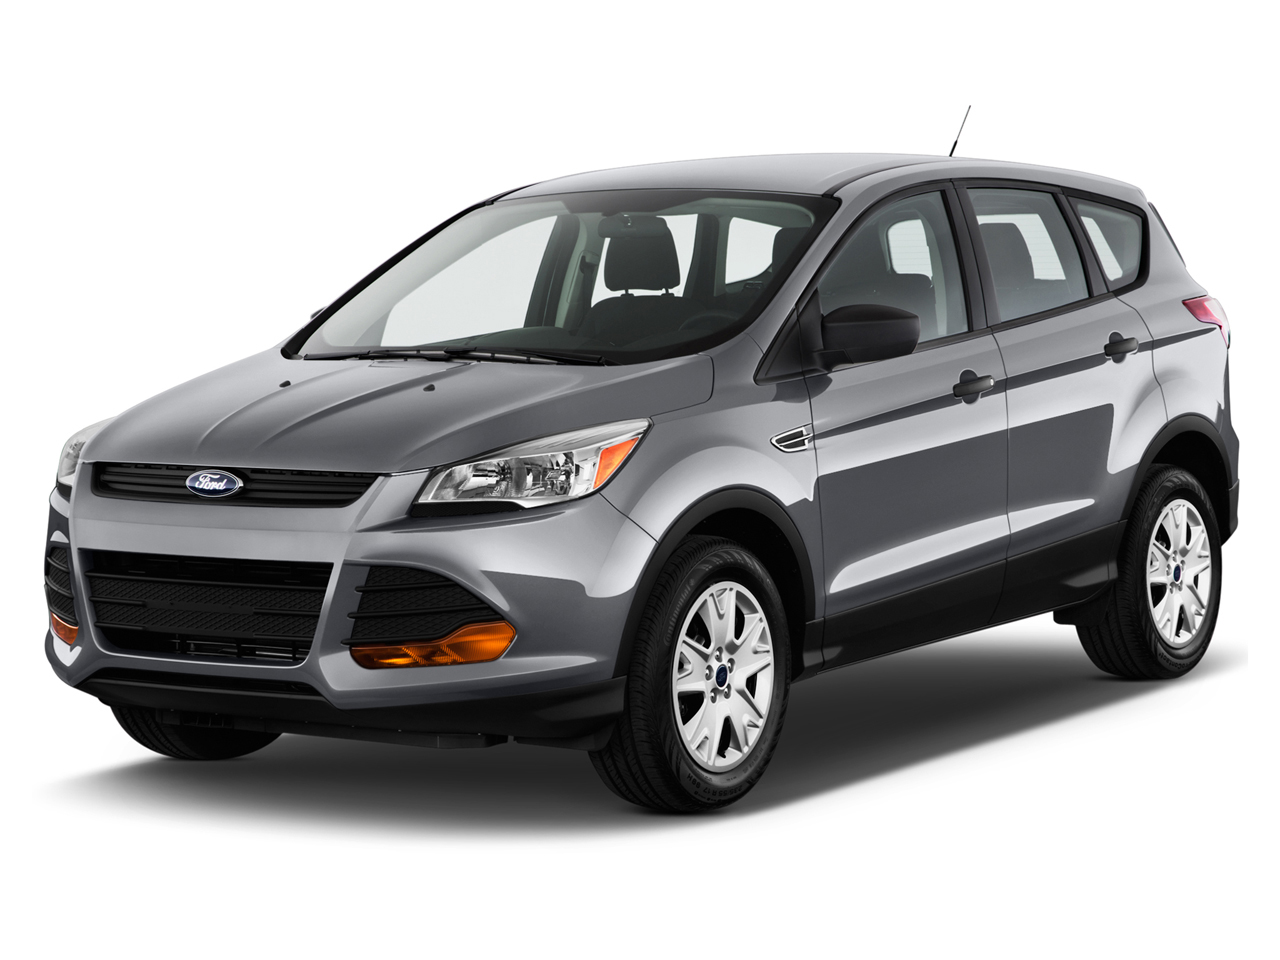 Fort Dodge Ford >> 2013 Ford Escape Review, Ratings, Specs, Prices, and Photos - The Car Connection